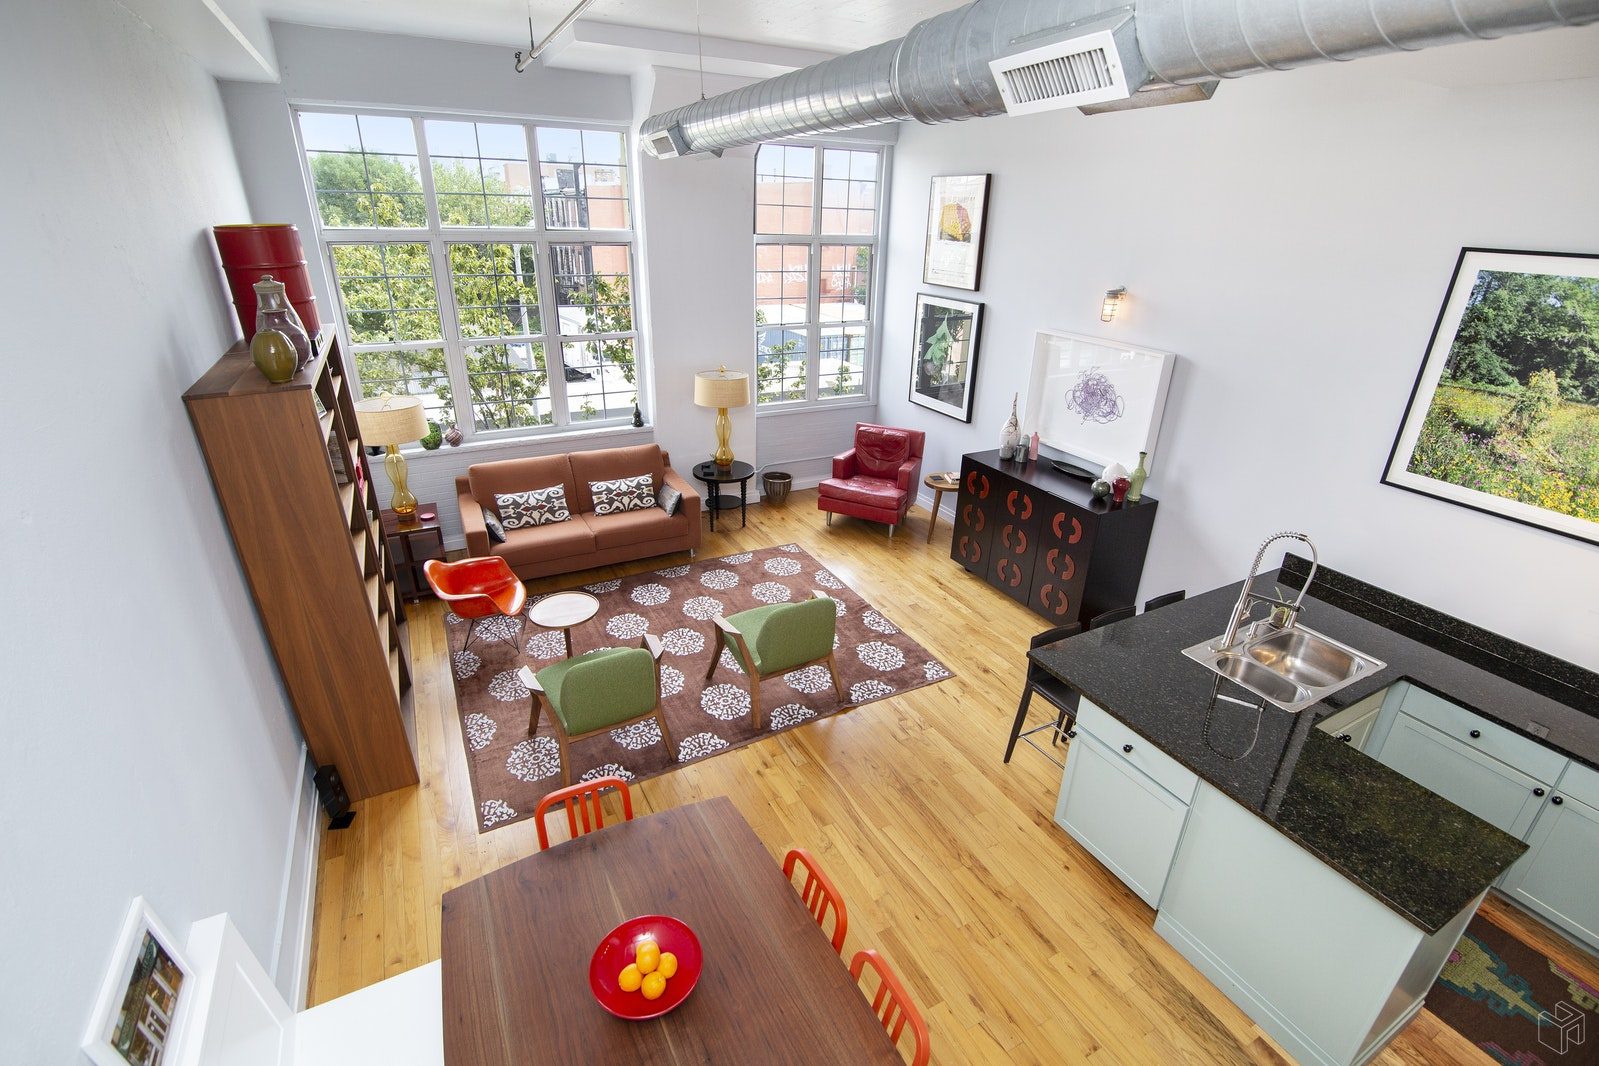 689 Myrtle Avenue 2a, Clinton Hill, Brooklyn, NY, 11205, $798,000, Sold Property, Halstead Real Estate, Photo 3